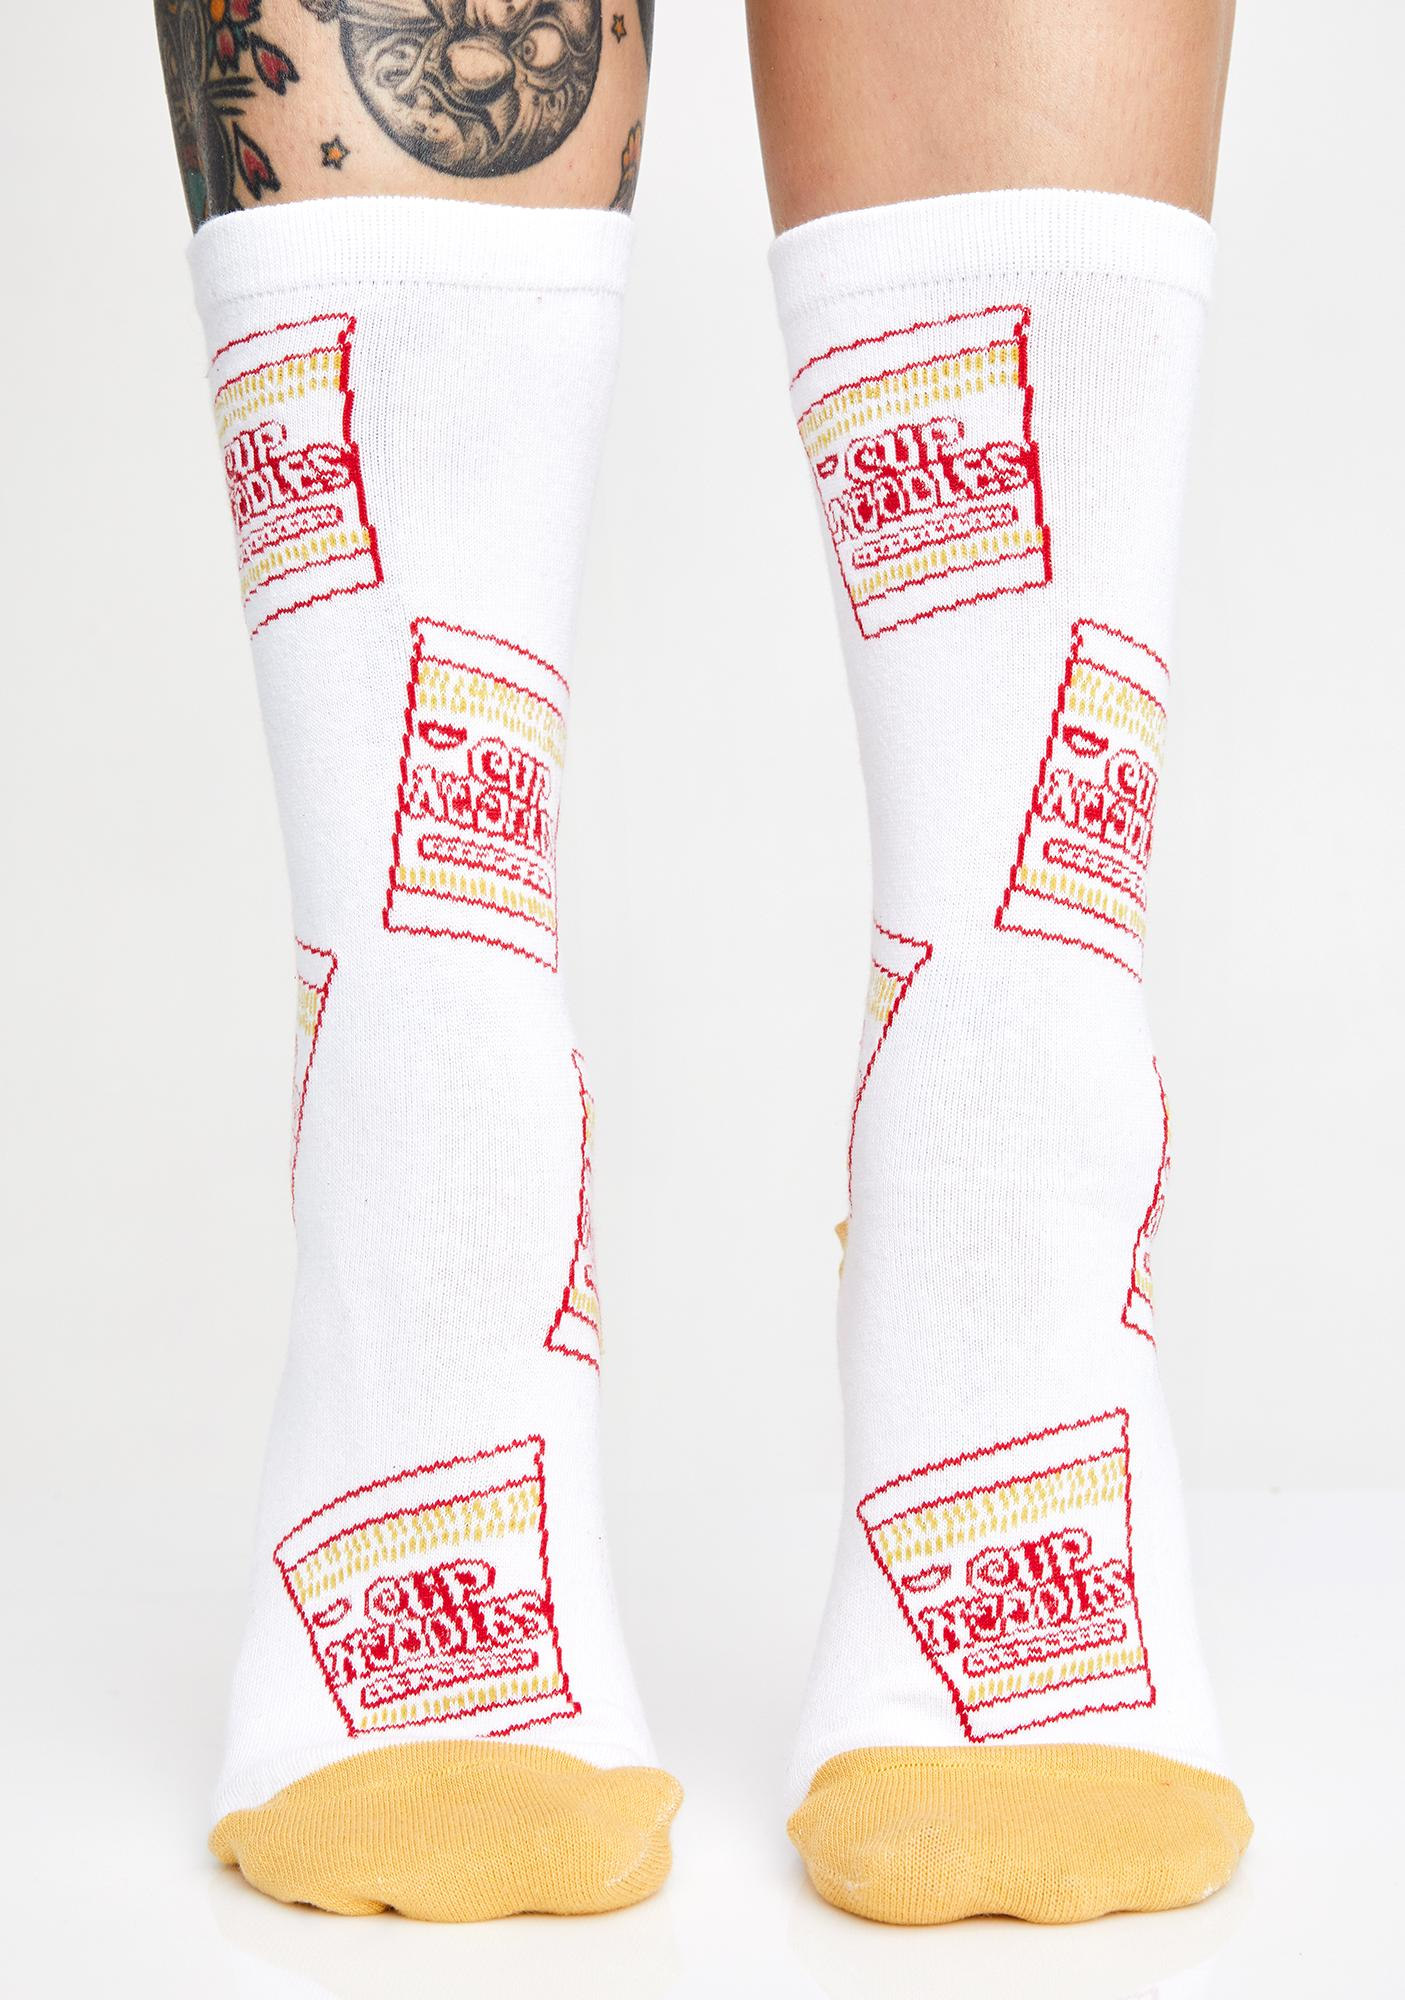 Oodles Of Cup Noodles Socks